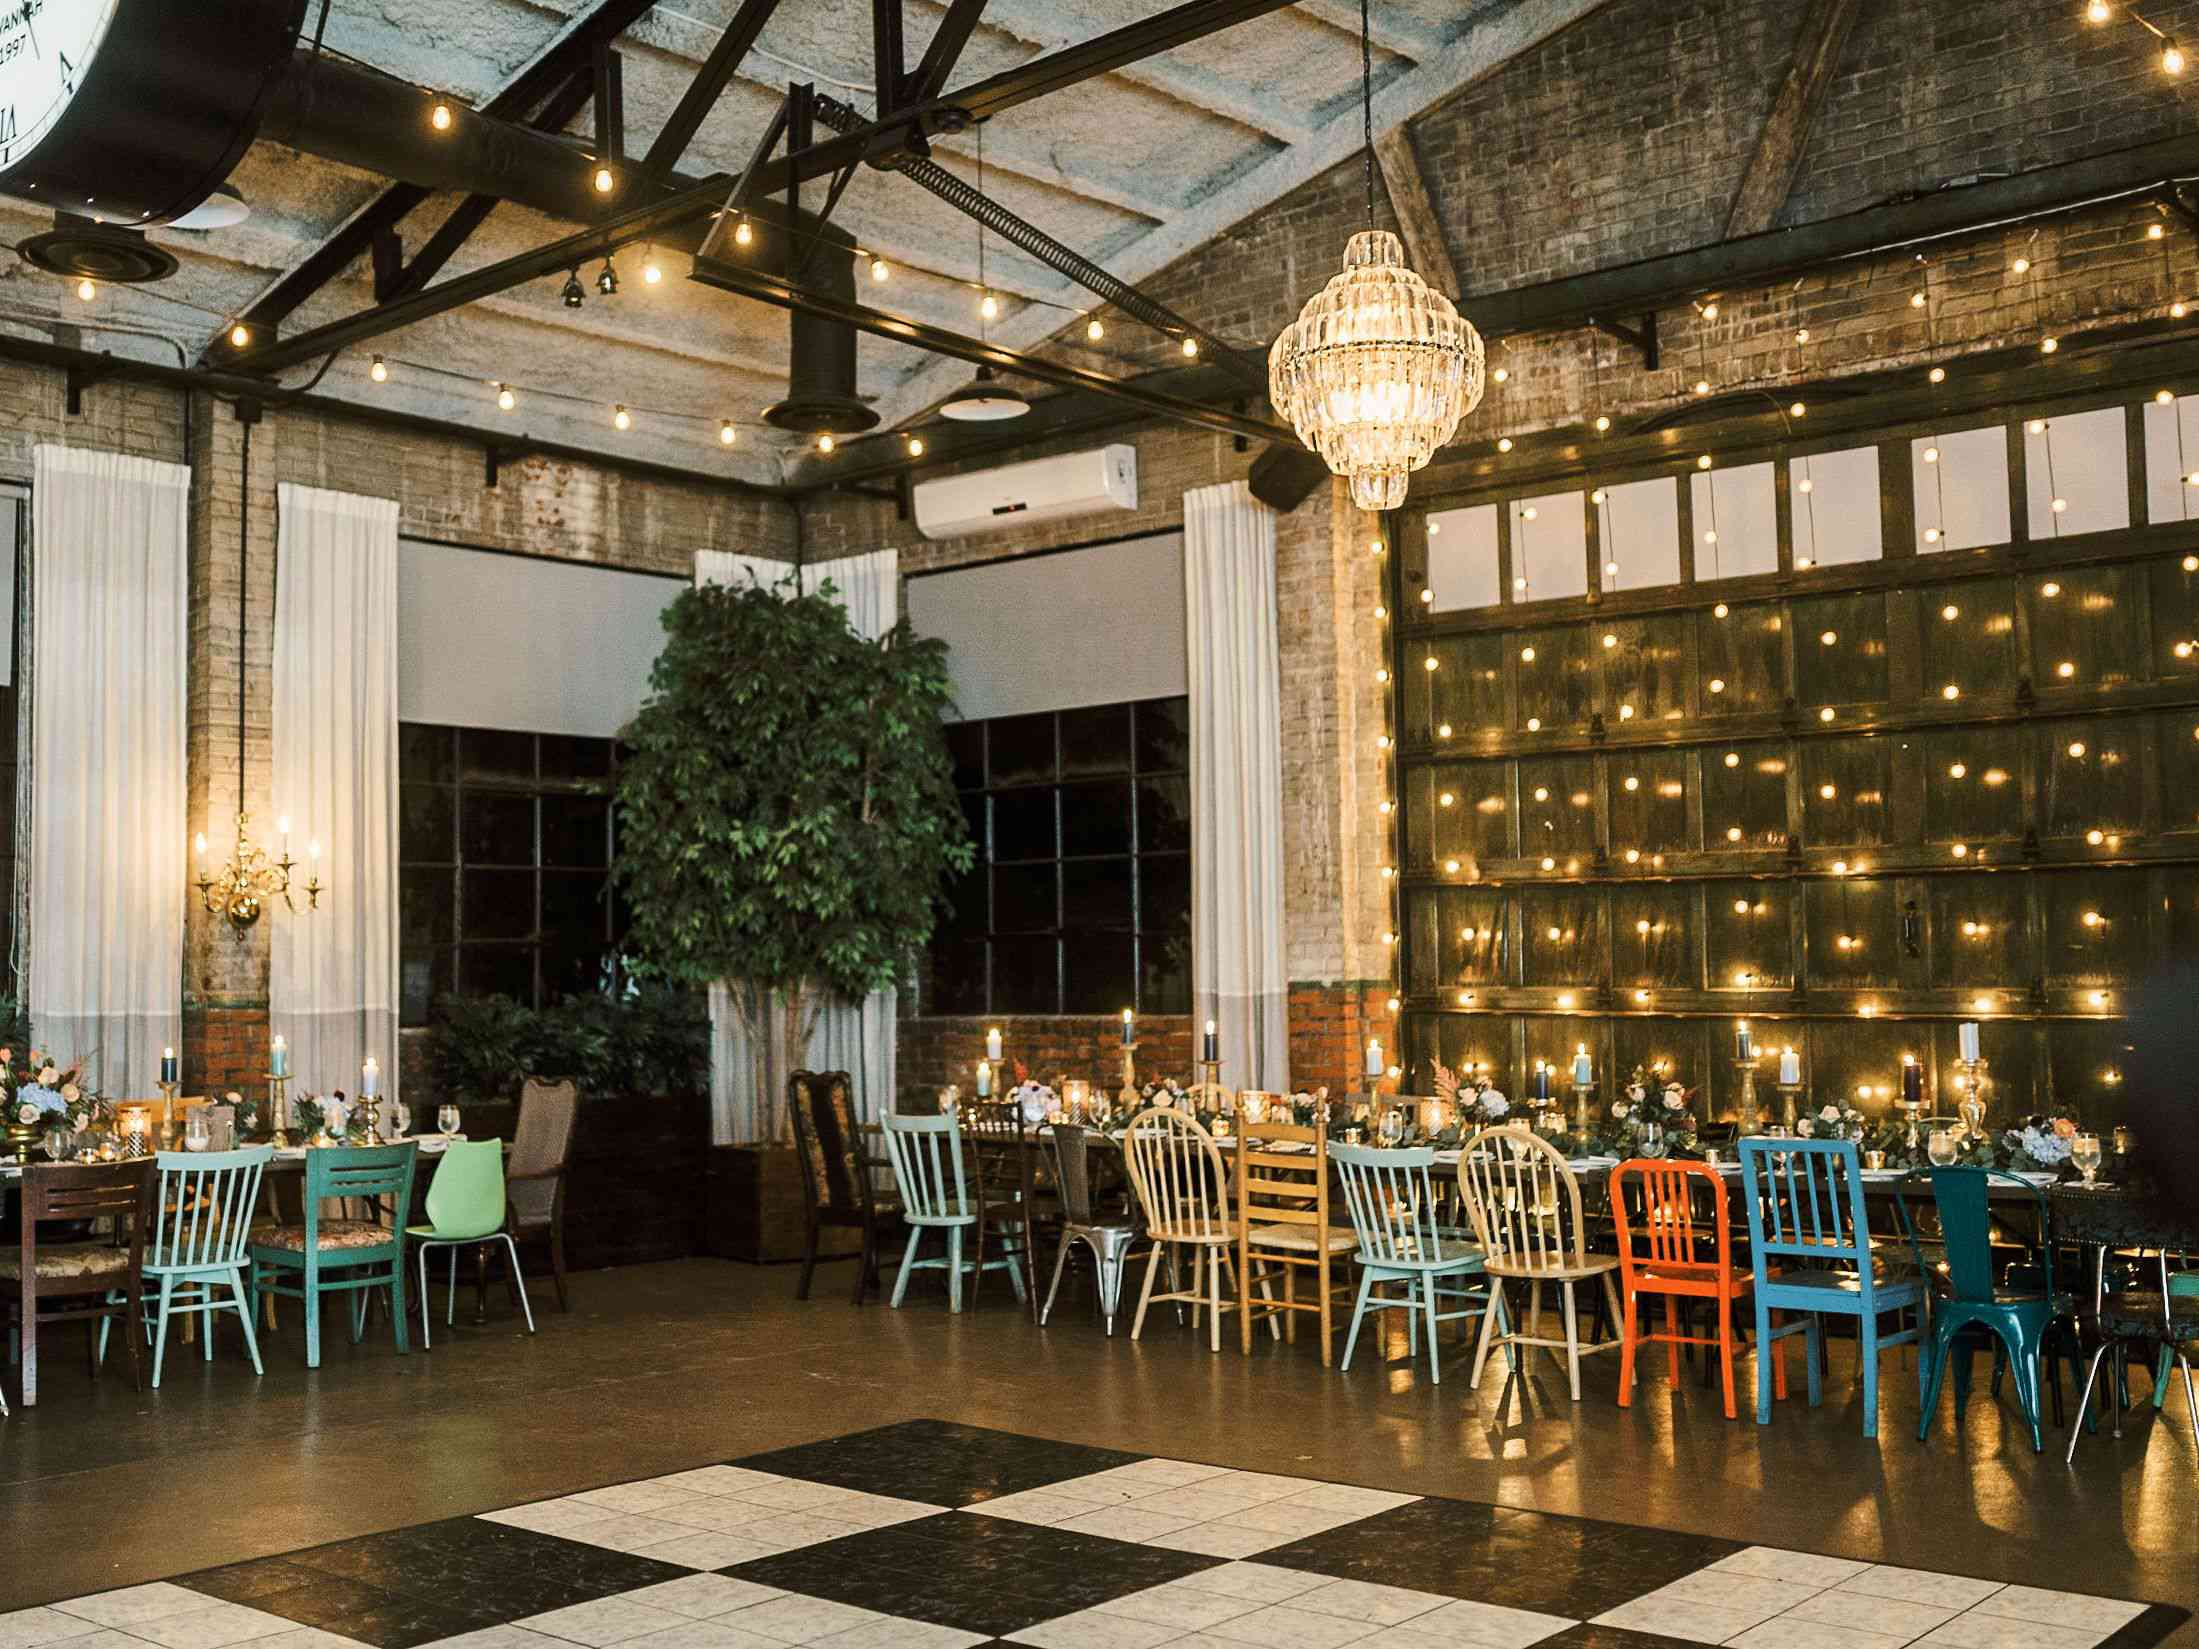 Affordable Wedding Venues 16 Stunning And Budget Friendly Options